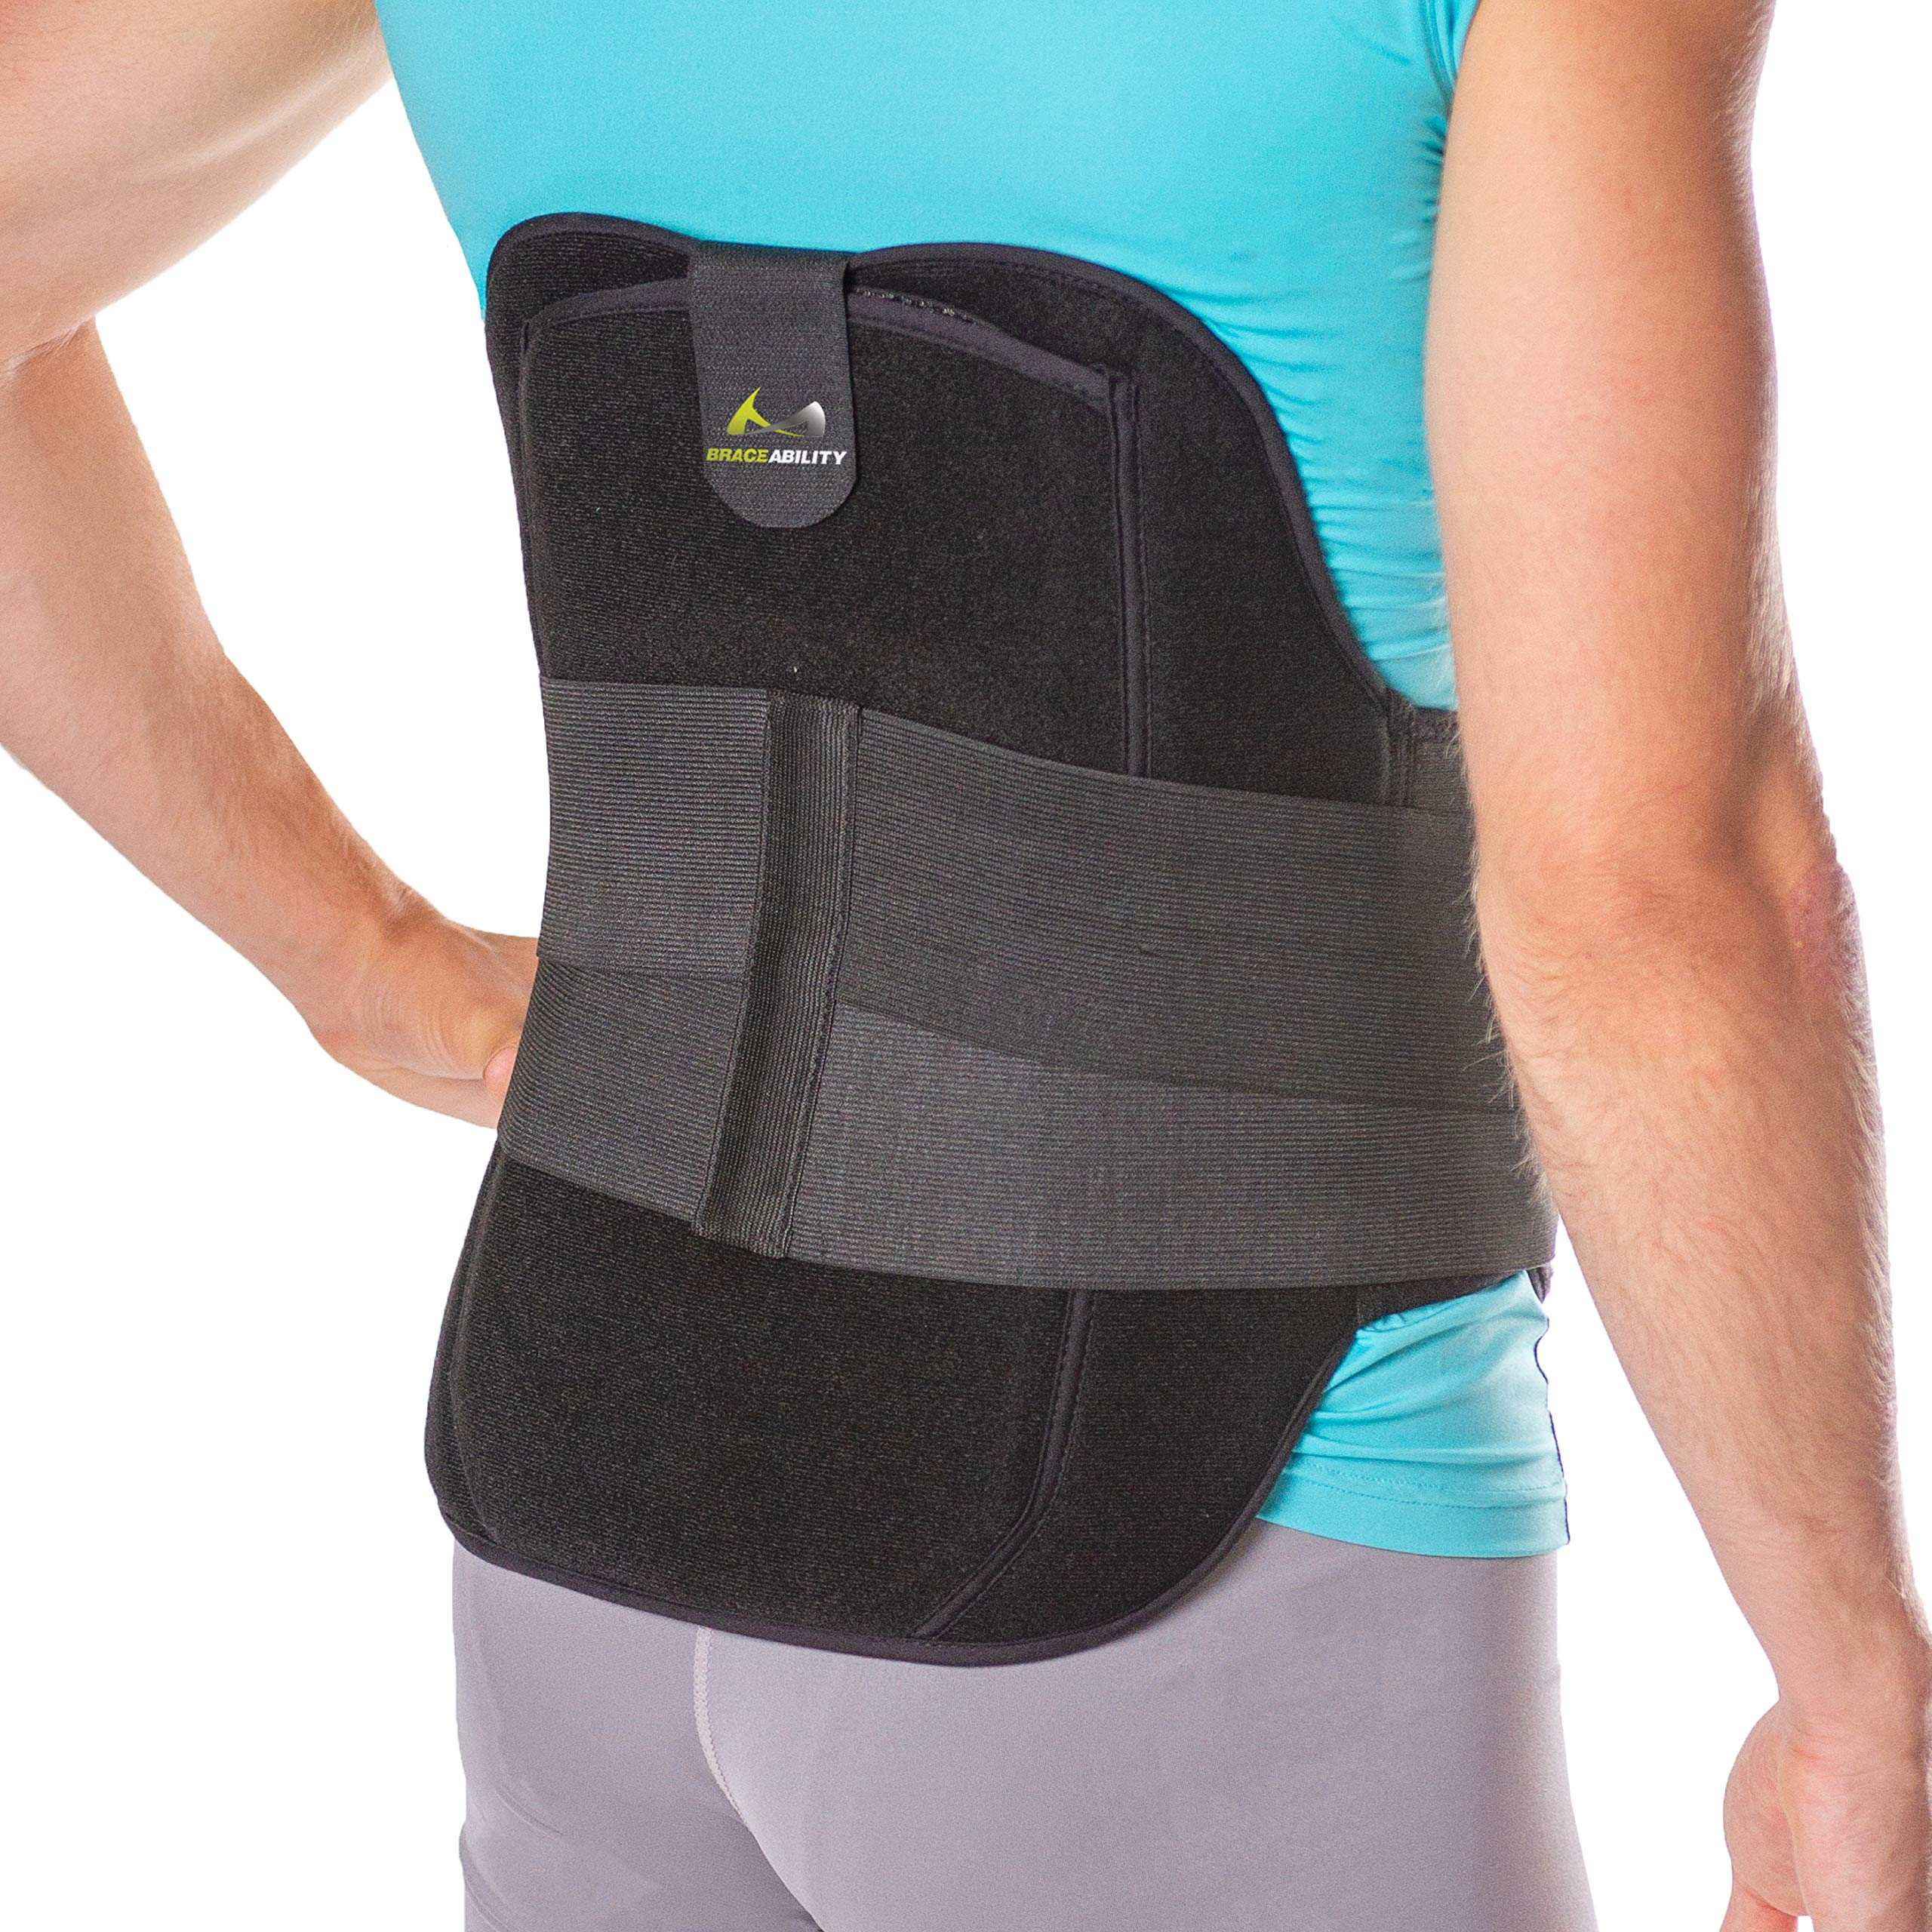 BraceAbility LSO Back Brace for Herniated, Degenerative & Bulging Disc Pain Relief, Sciatica, Spine Stenosis | Medical Lumbar Support Device for Post Surgery & Fractures with Hot/Cold Therapy (L) by BraceAbility